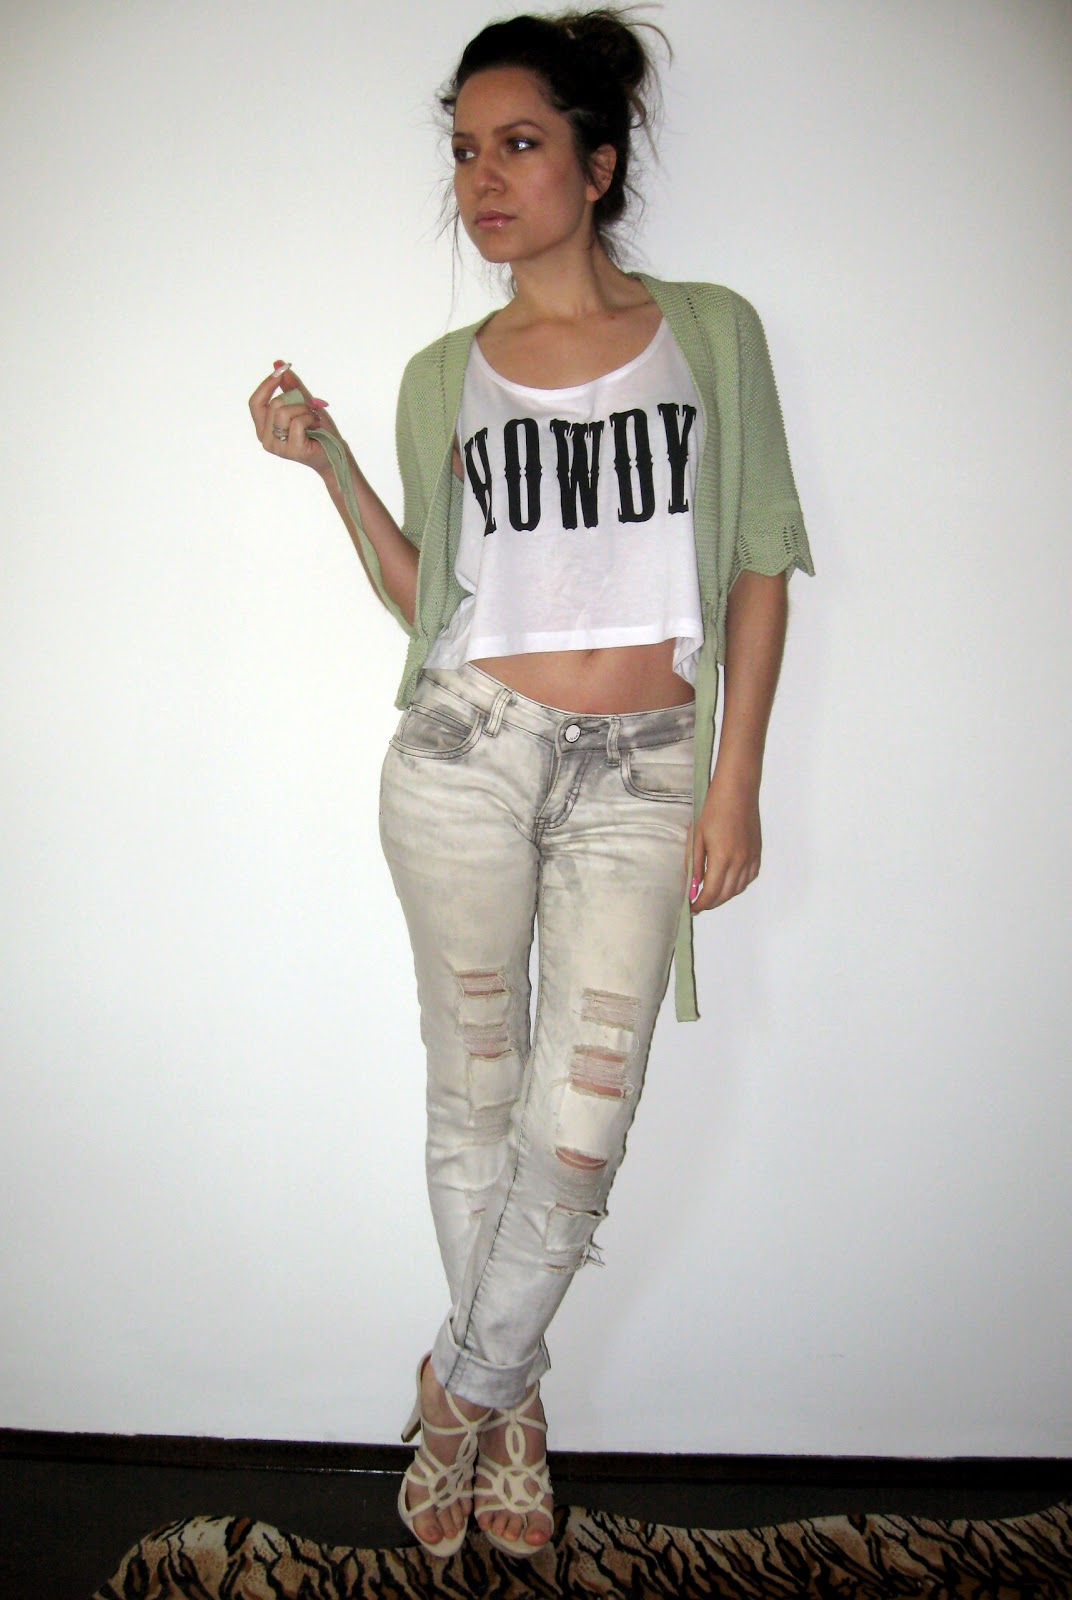 new yorker white crop top, acid wash ripped jeans, beige sandals, zara green cropped cardigan, messy bun, OOTD